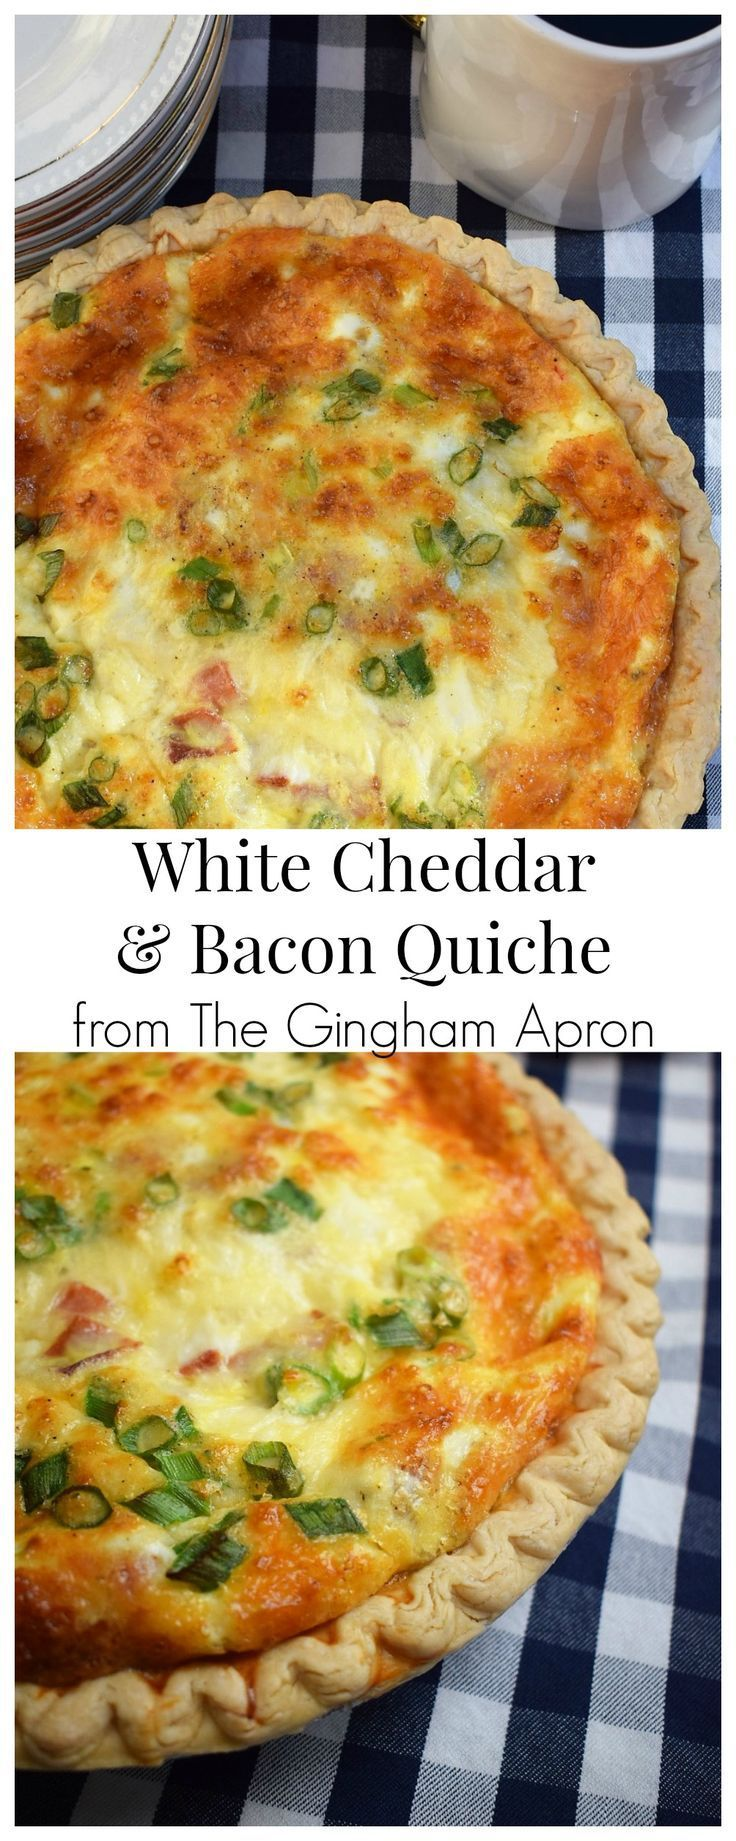 White Cheddar and Bacon Quiche | The Gingham Apron White Cheddar and Bacon Quiche- a scrumptious, c